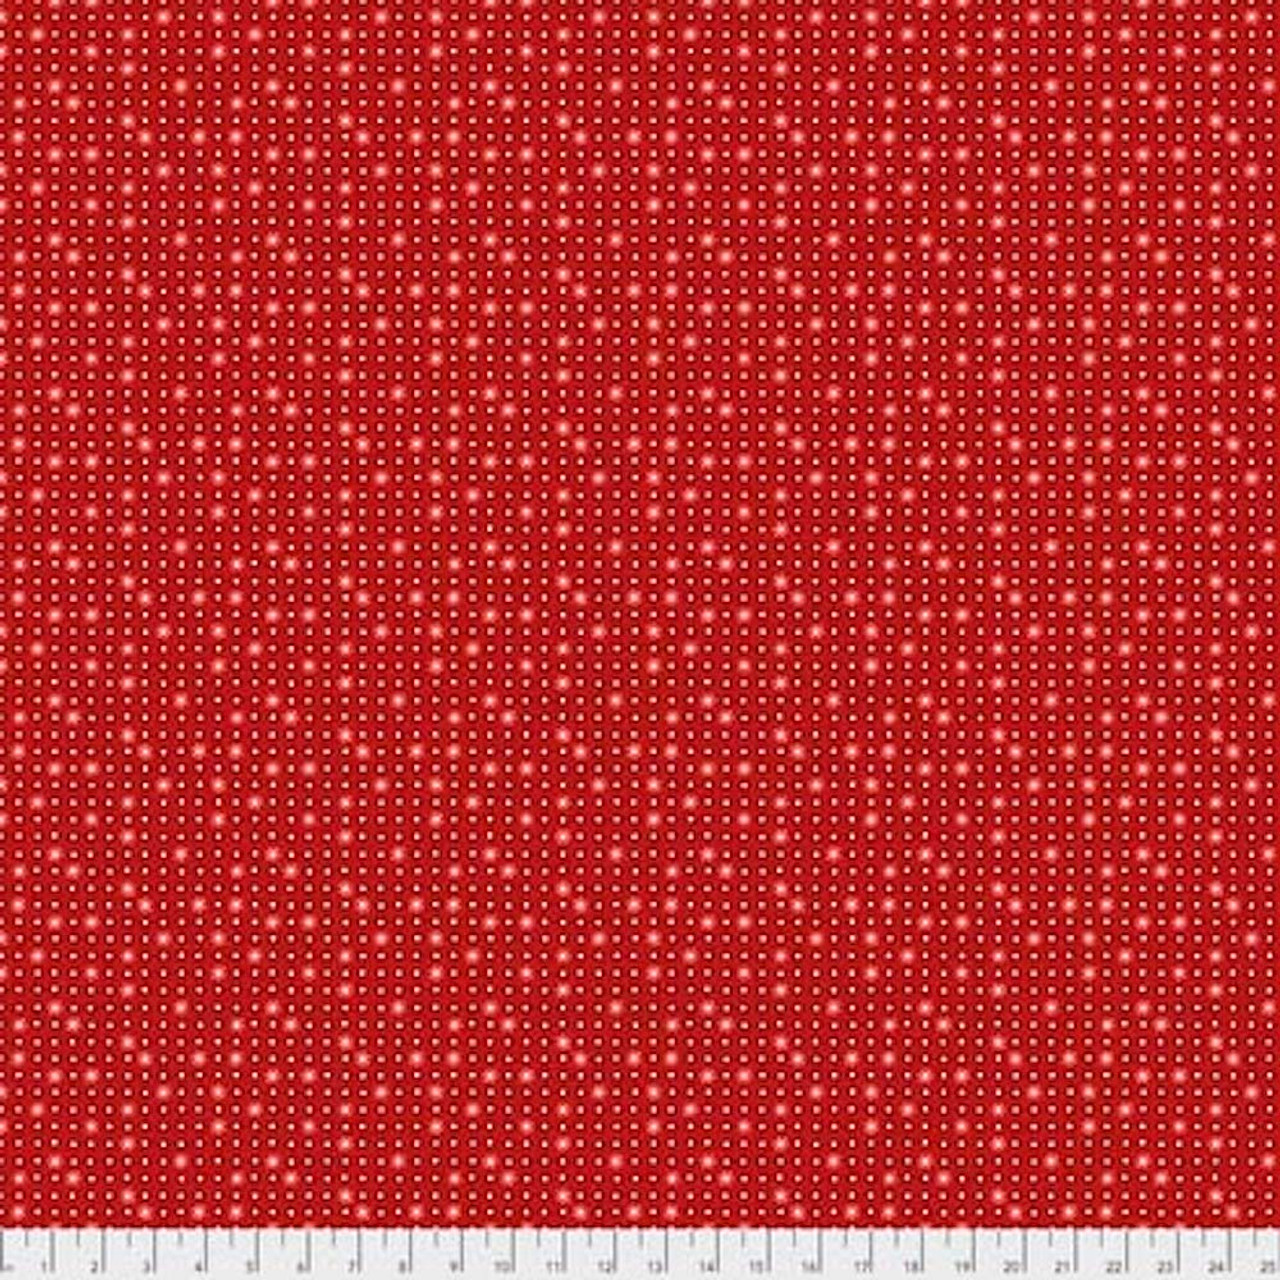 Coats PWCC013 Daisy Daze Daisies Red Cotton Quilting Fabric By Yd